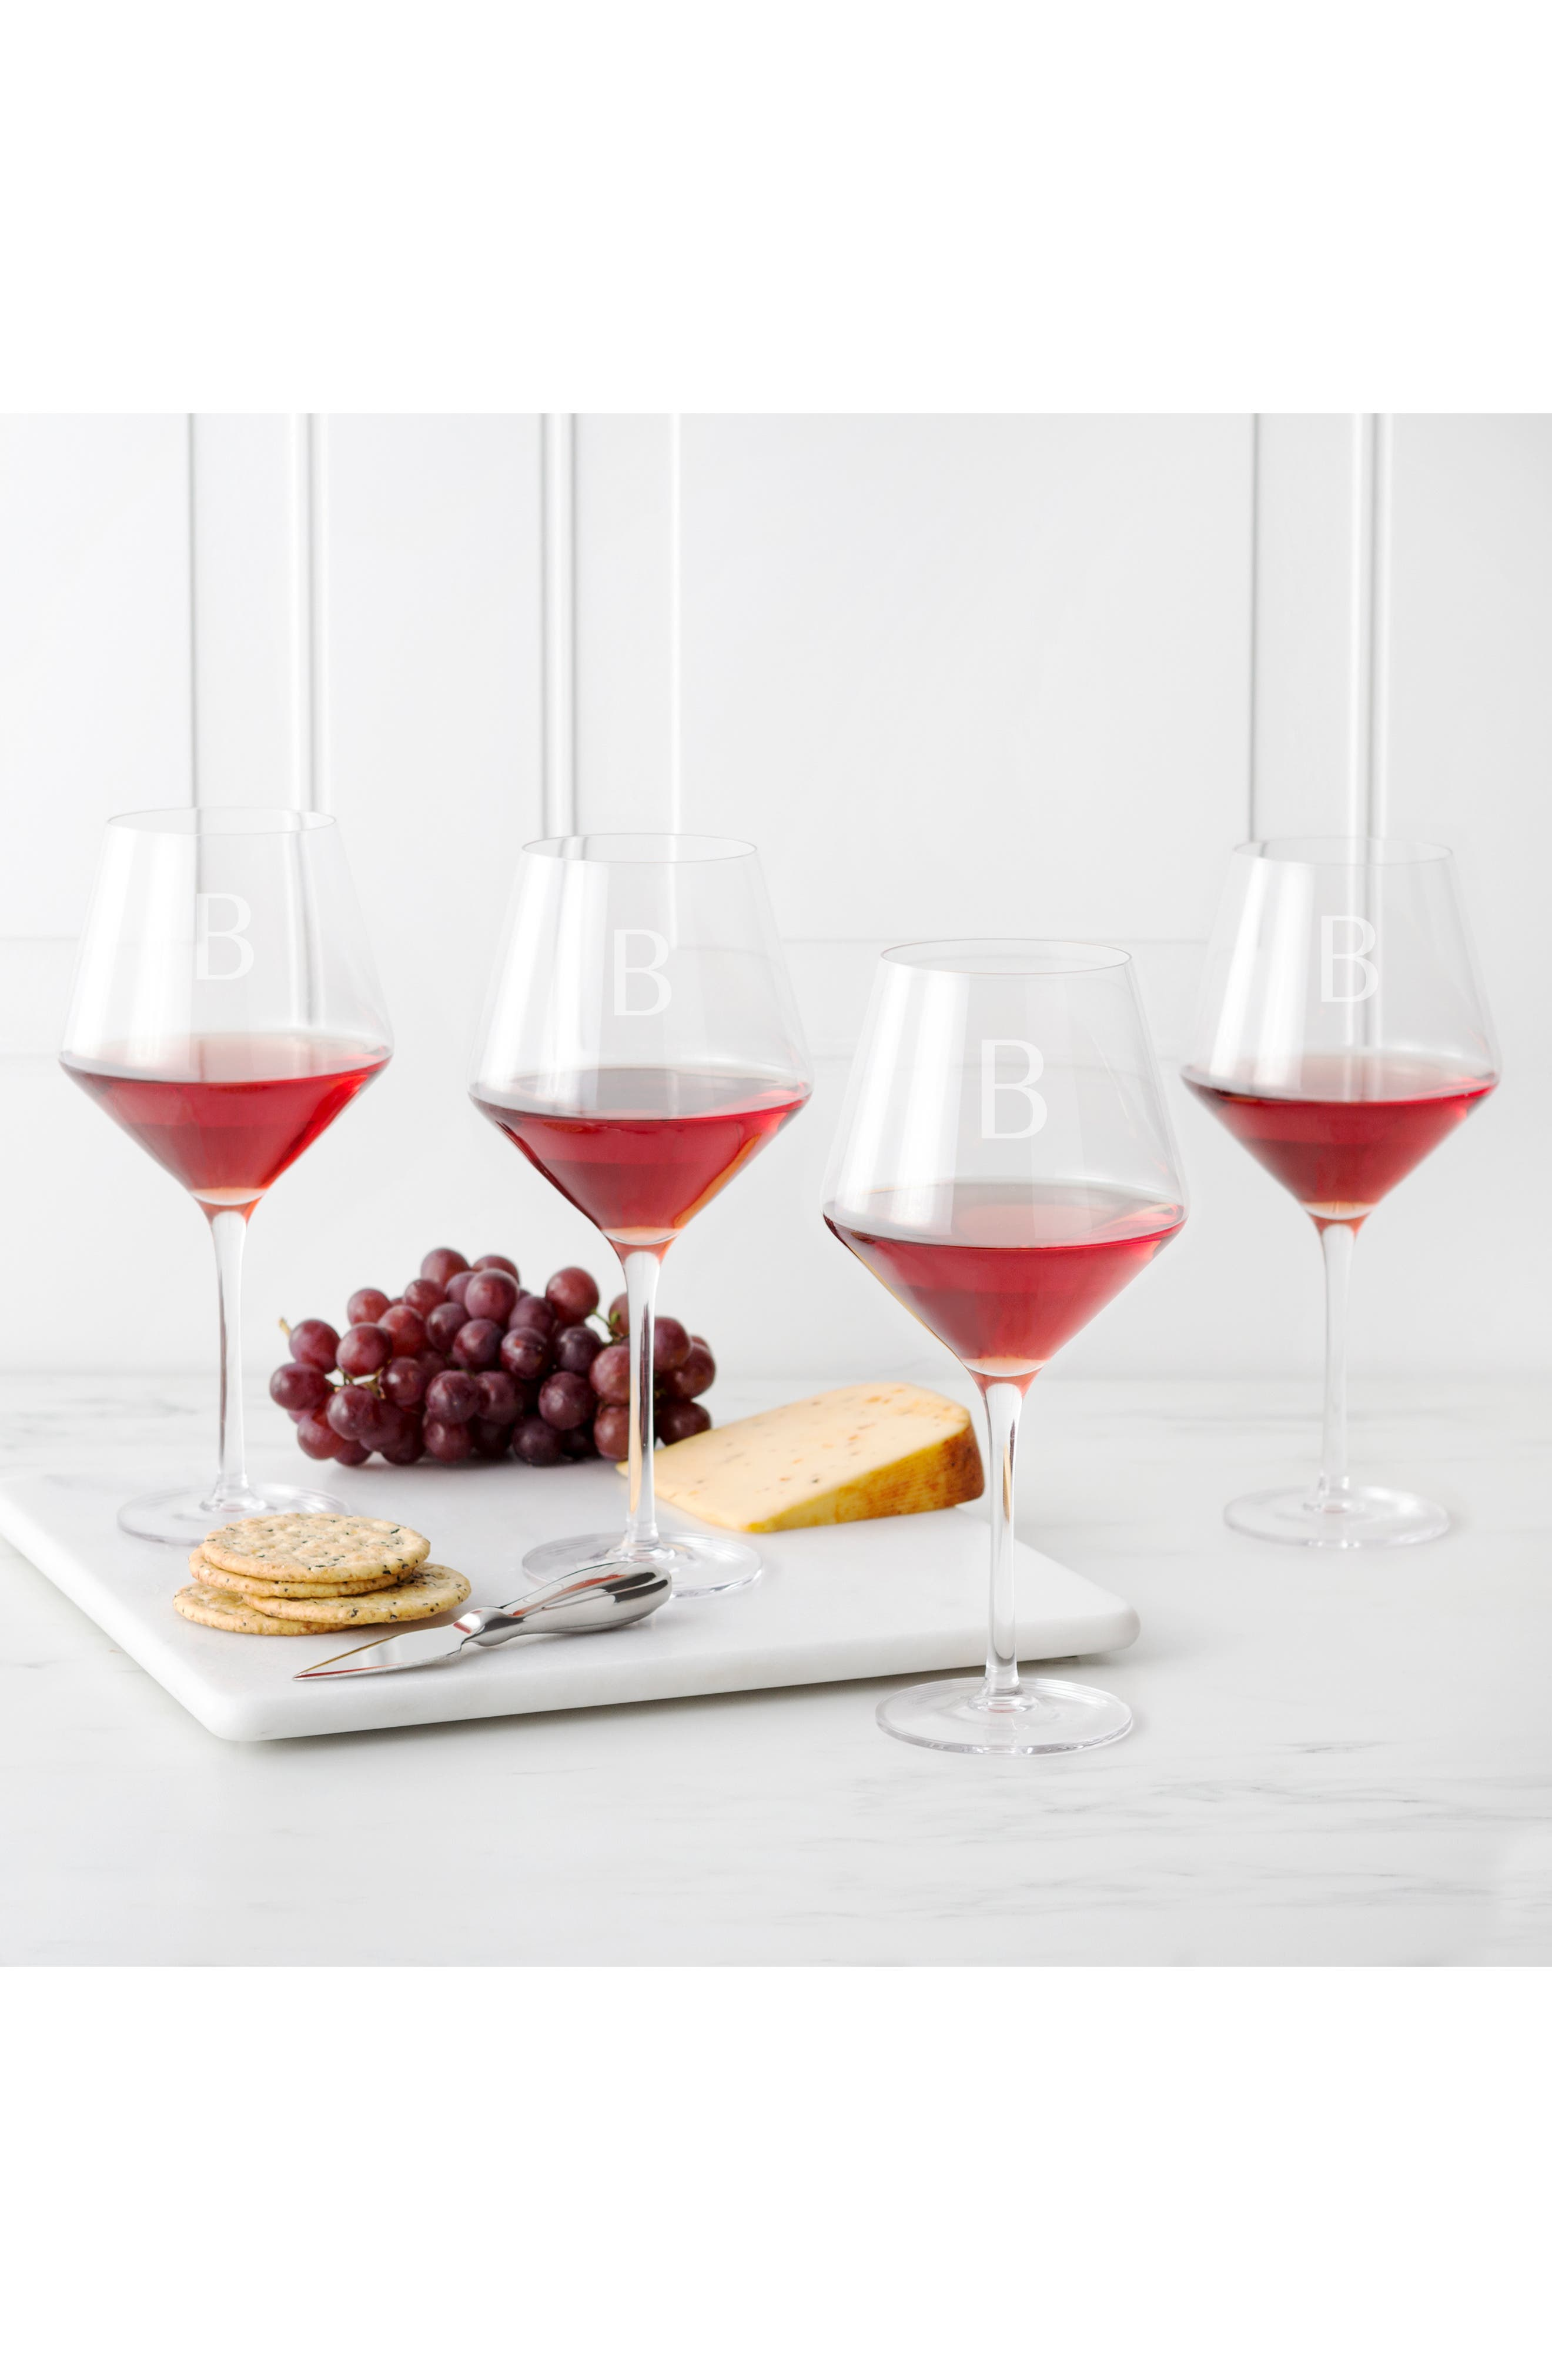 Estate Collection Set of 4 Monogram Red Wine Glasses,                             Alternate thumbnail 5, color,                             BLANK